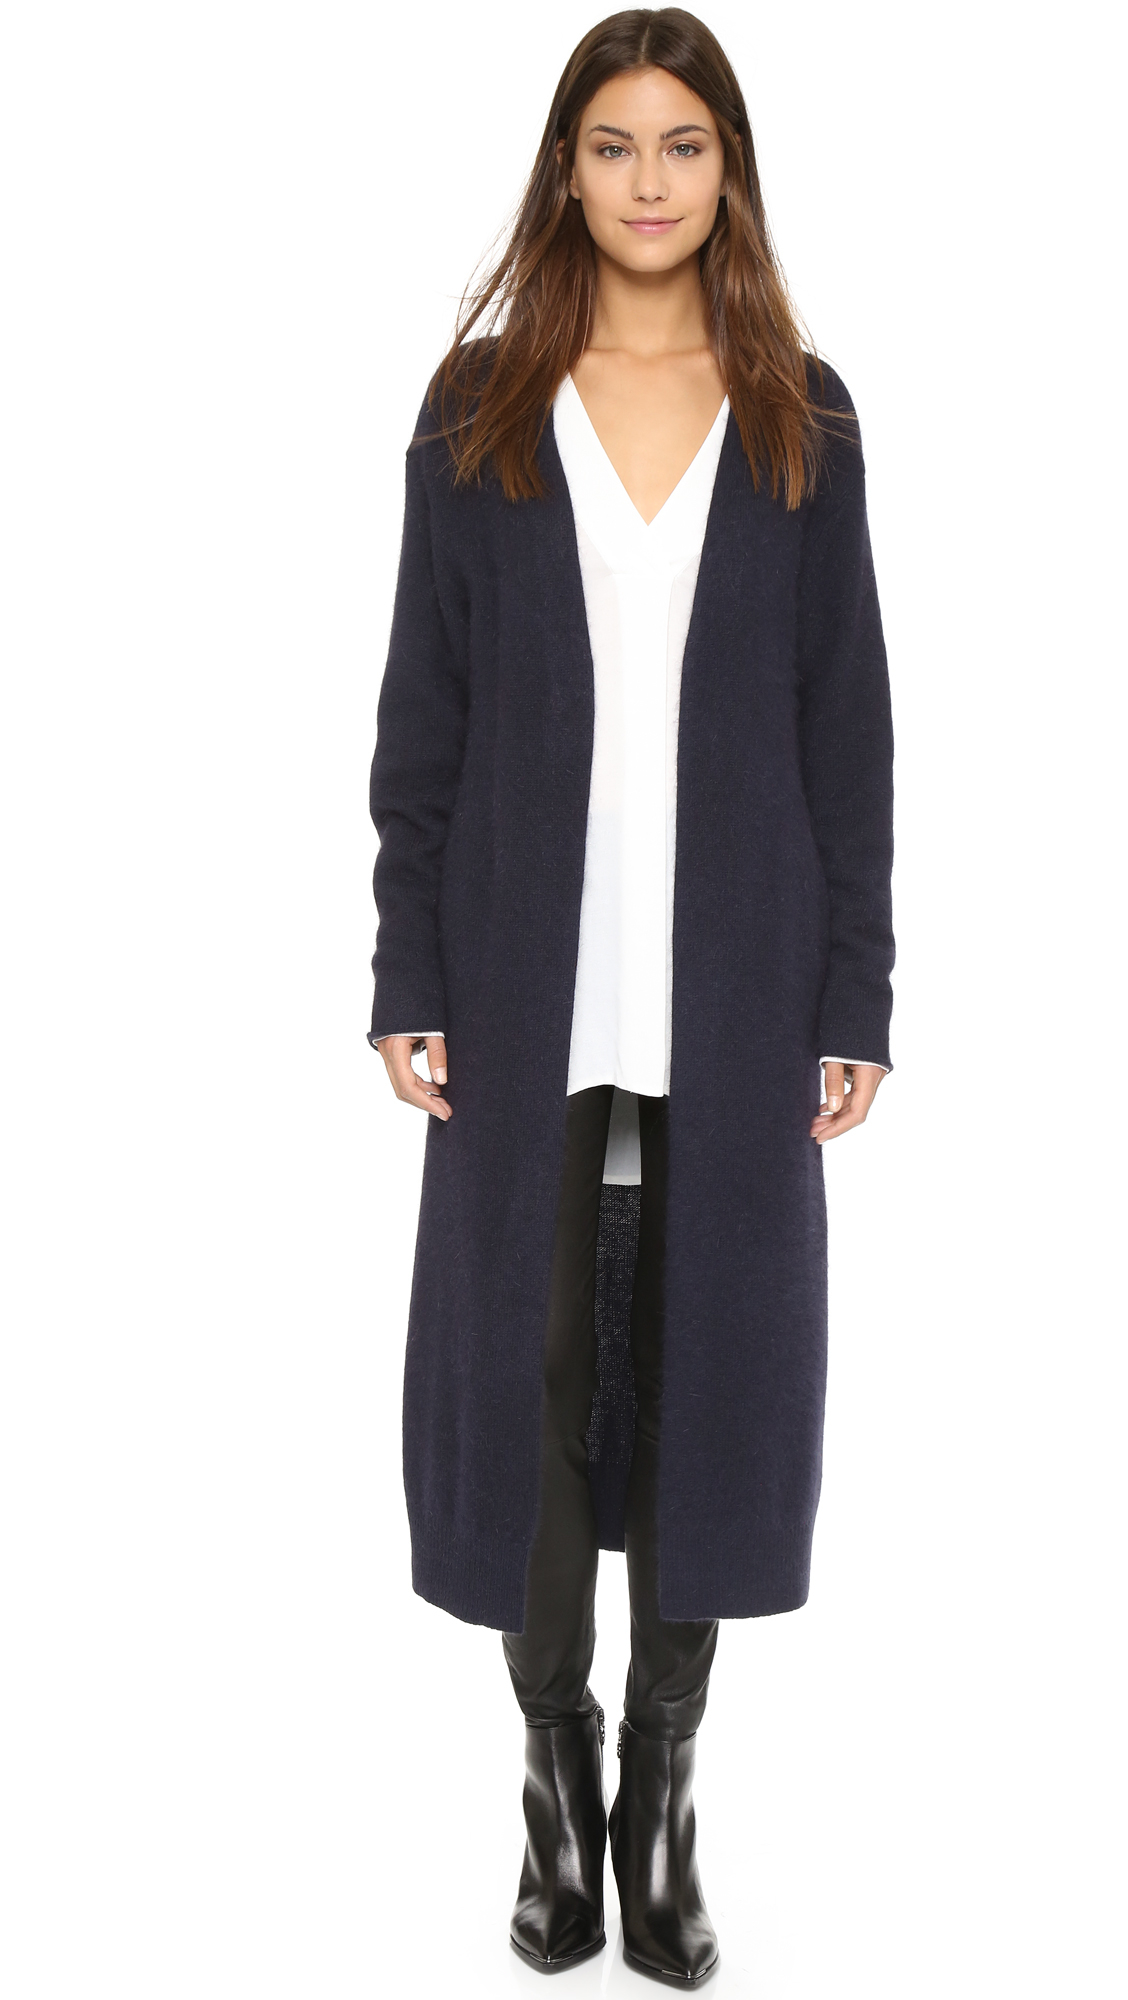 Lyst - Nicholas Angora Long Cardigan - Navy in Blue